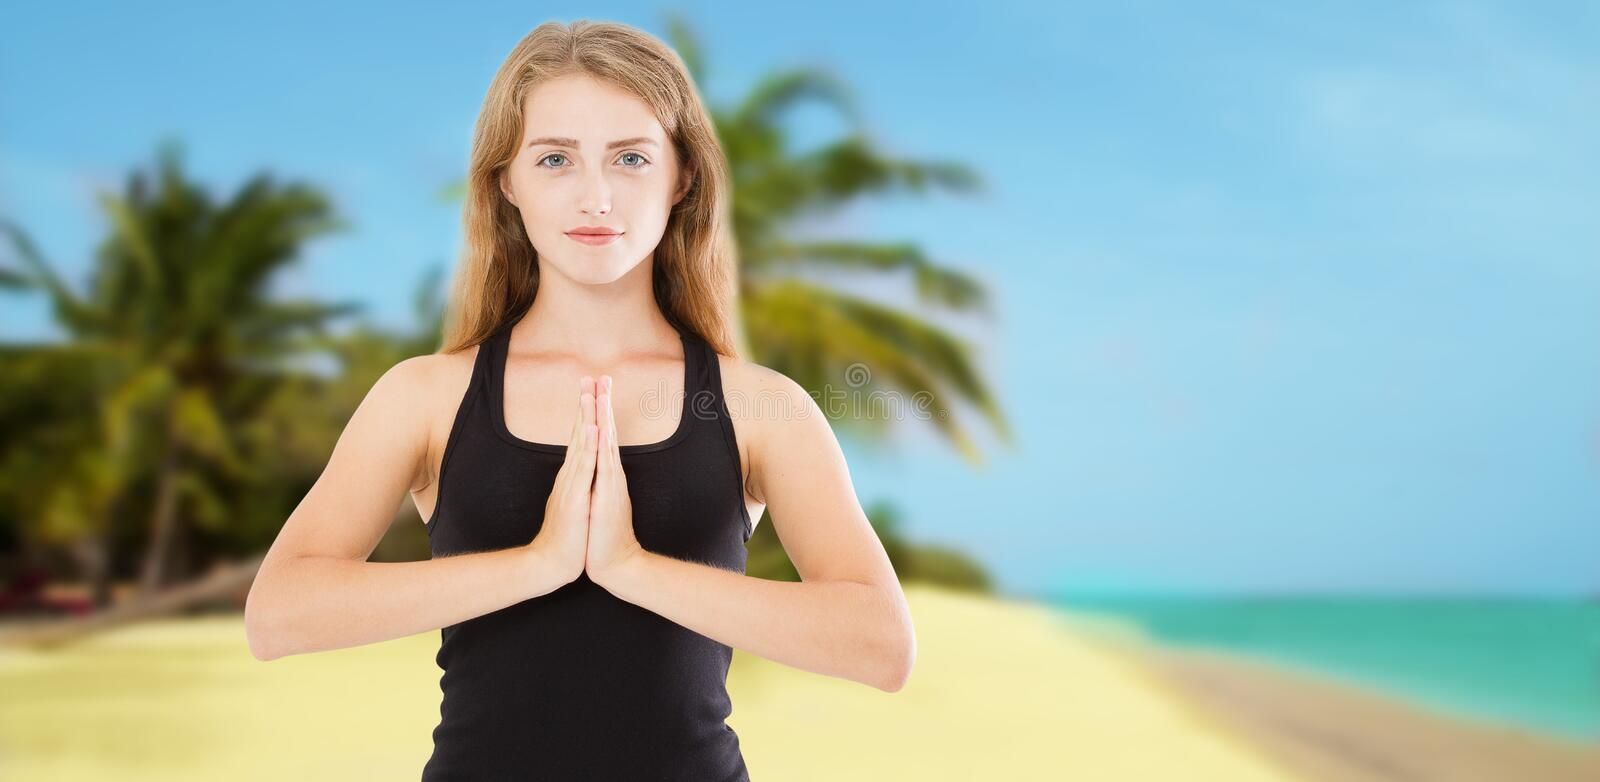 Young beautiful sporty woman doing yoga exercise on sea wooden beach near water. Girl practicing exercises mudra. Hands in namaste royalty free stock images